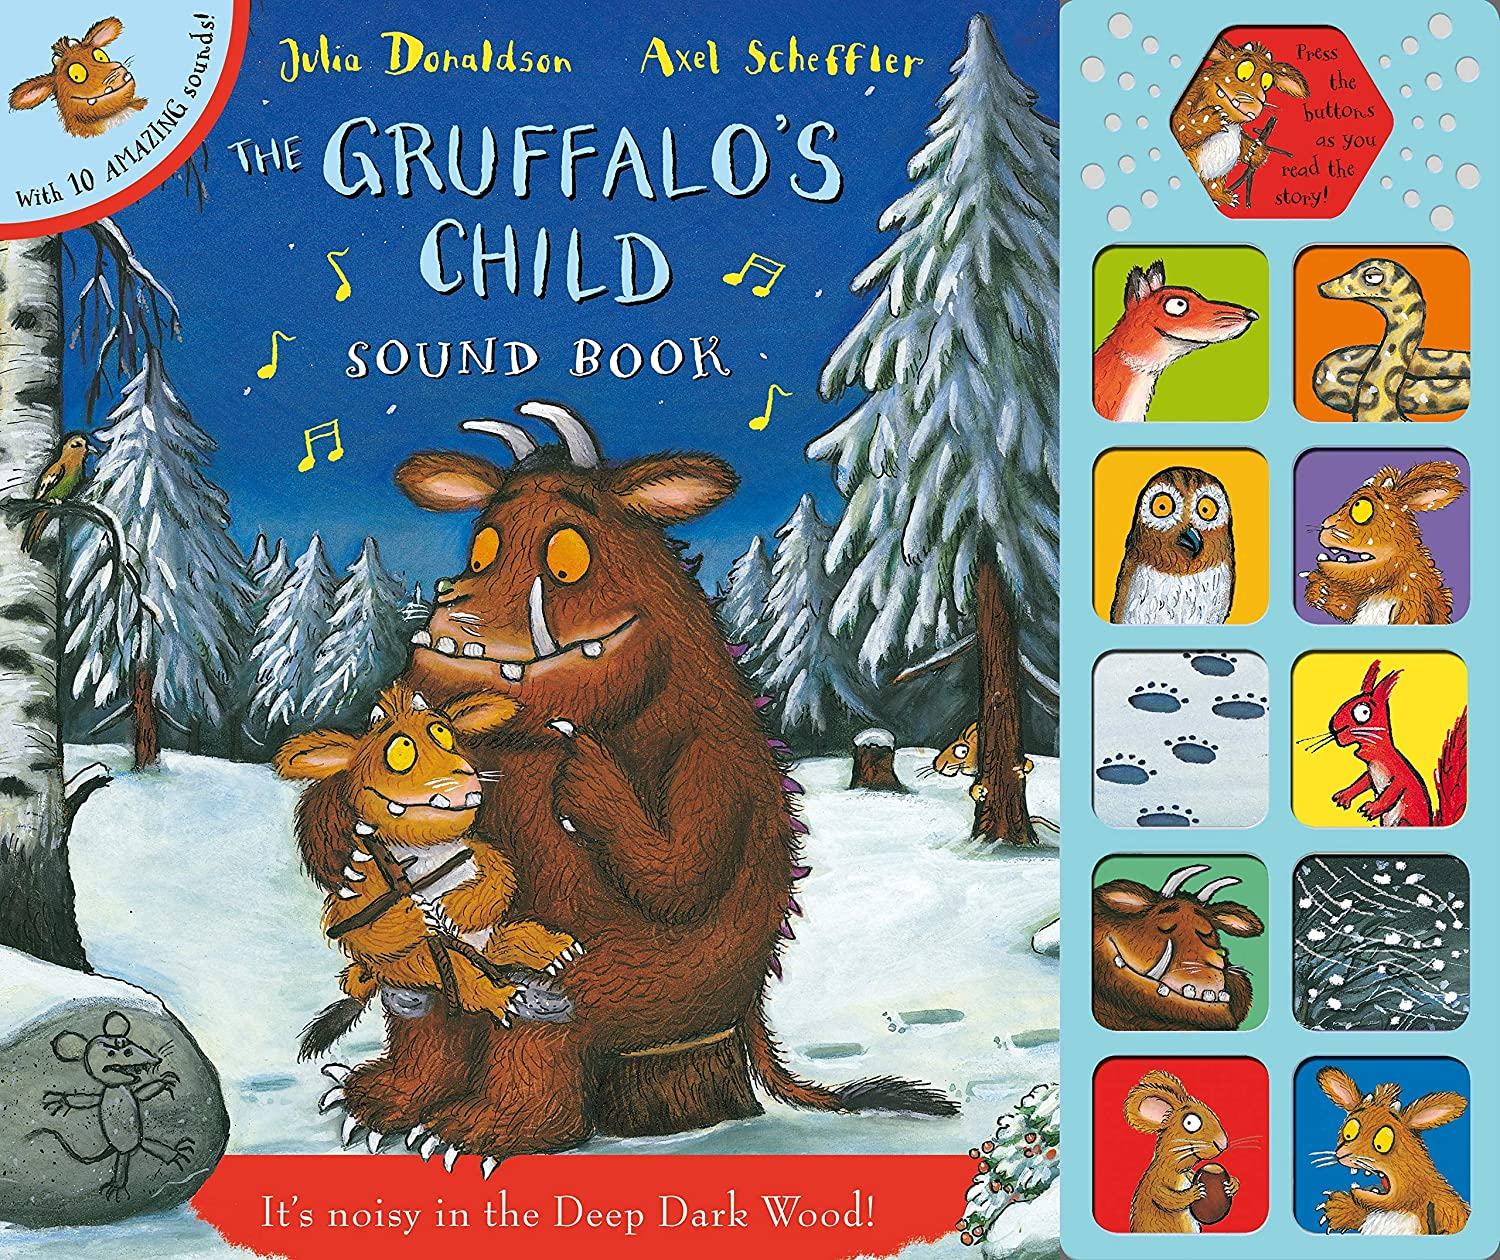 Gruffalo The Child an Oversize Sound Book for Little Hands